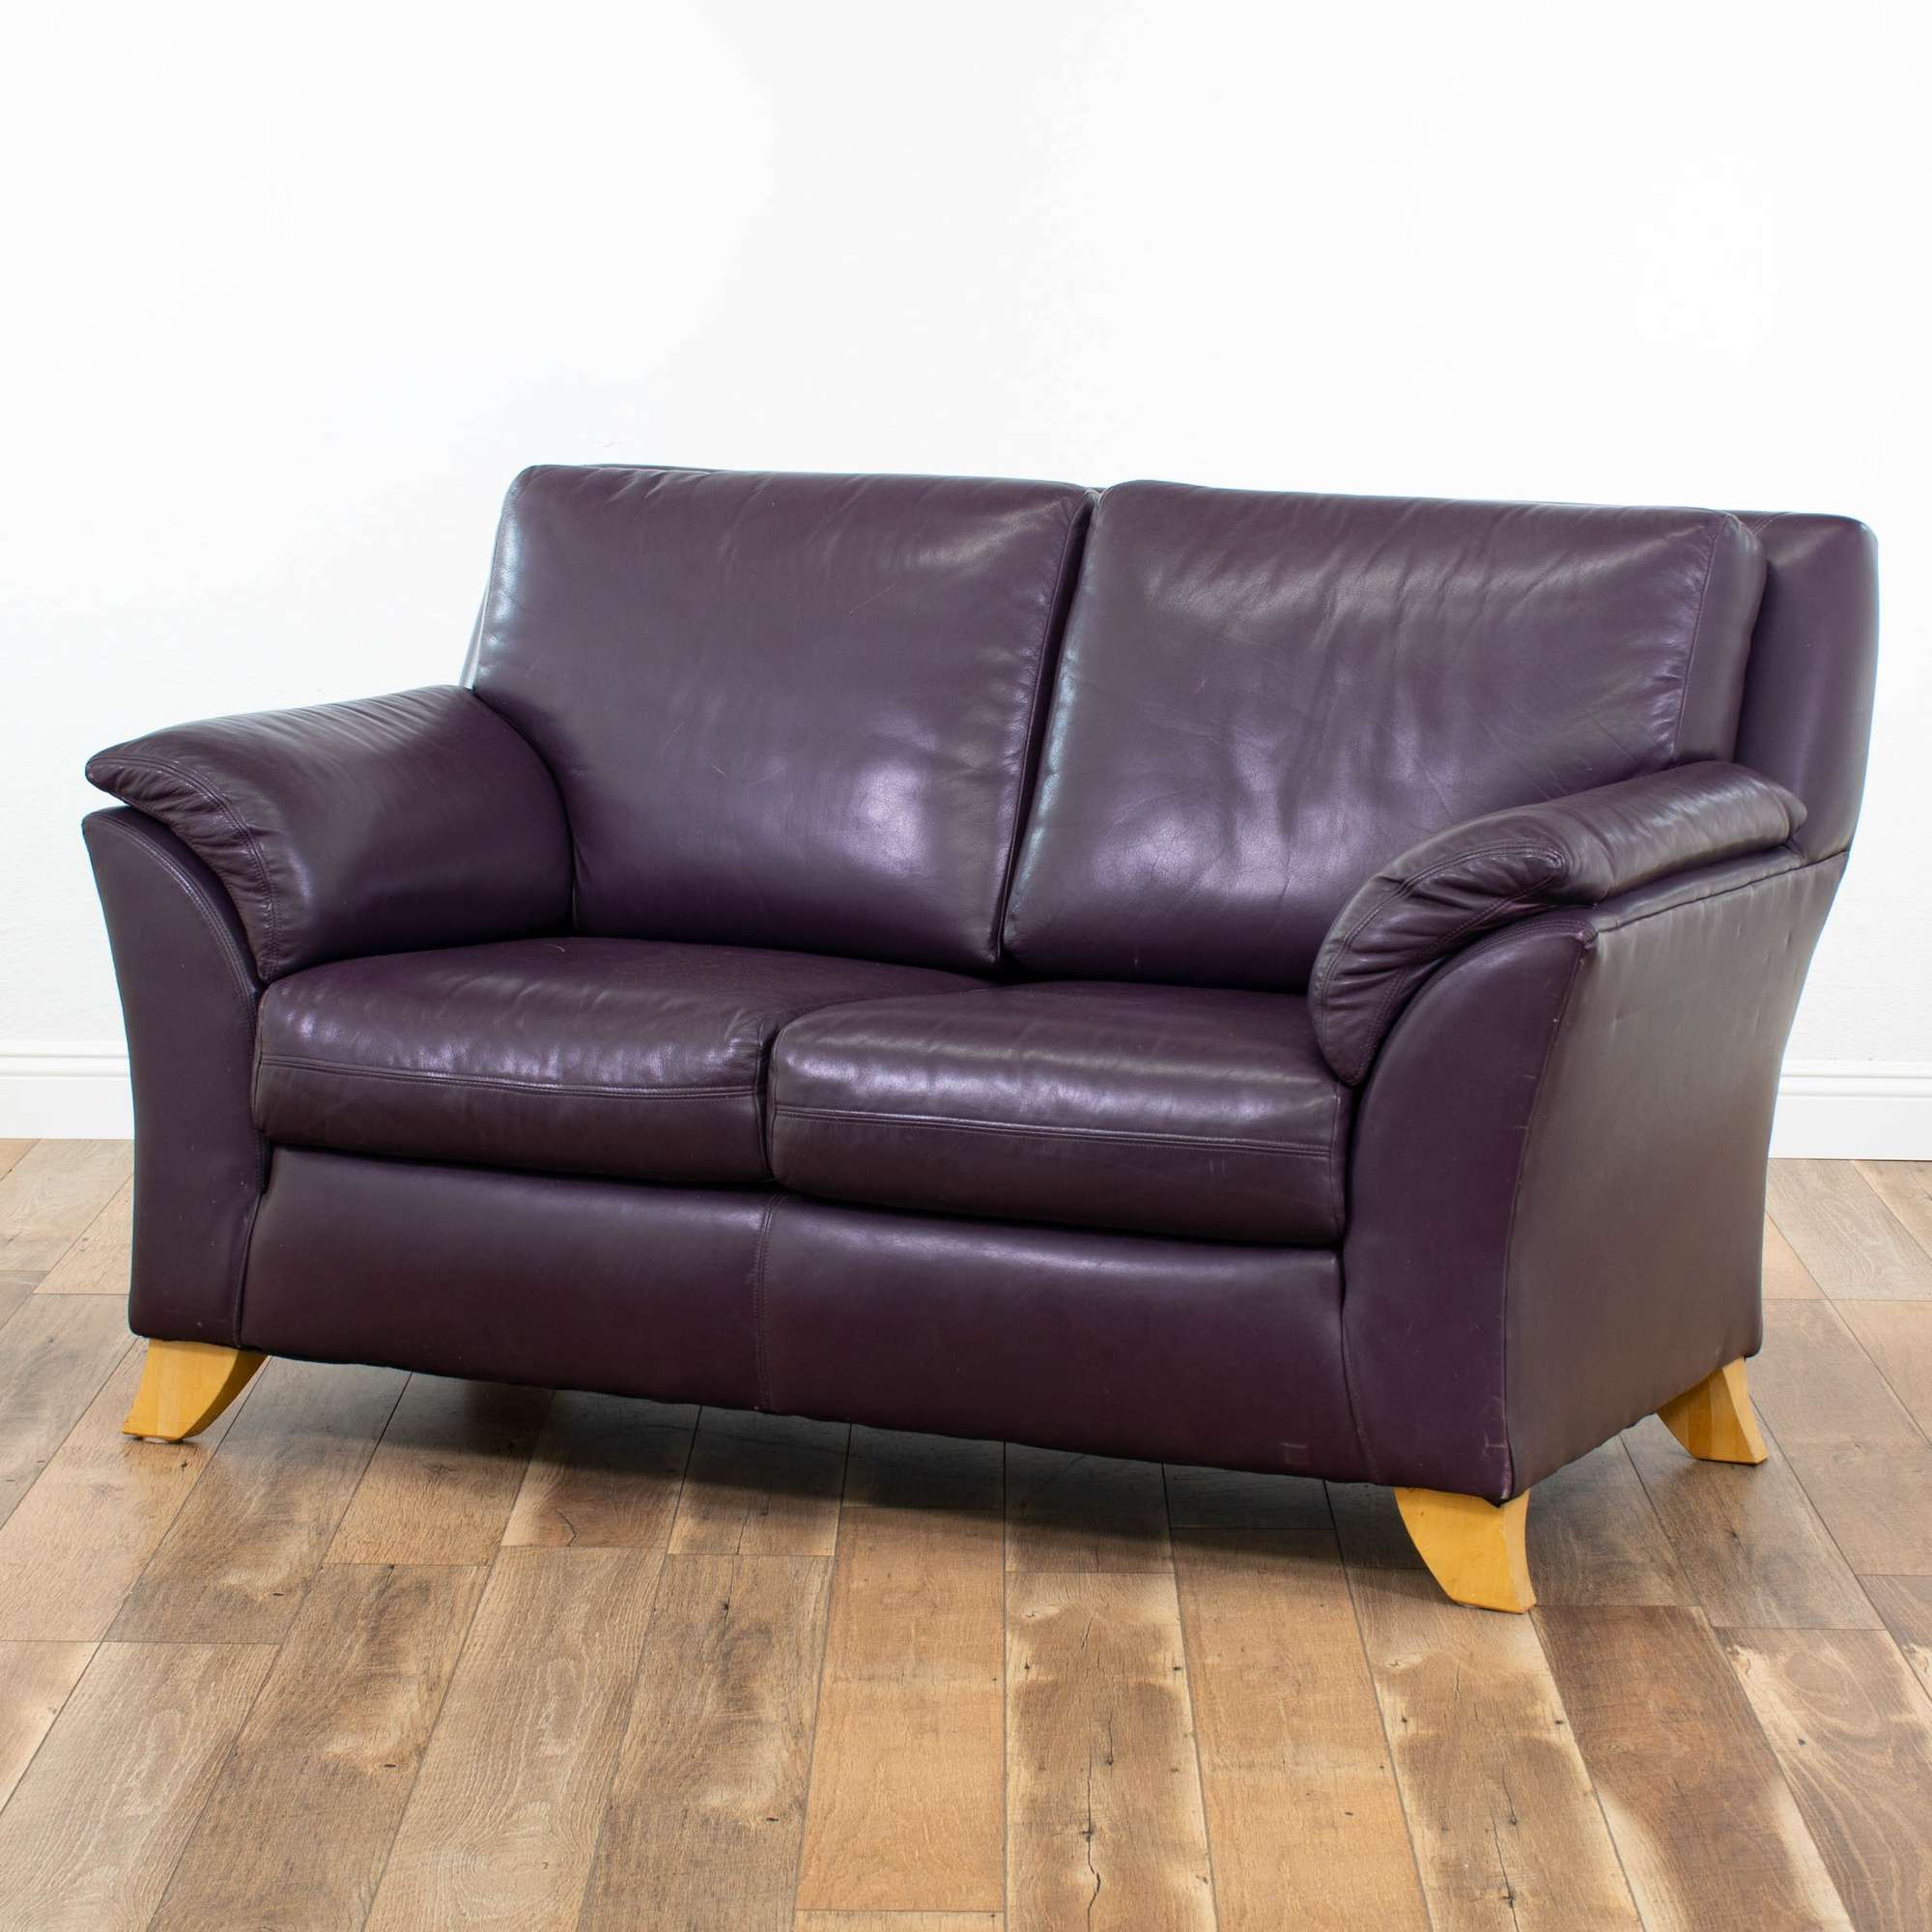 Admirable Genuine Leather Loveseat By The Leather Factory In Plum Gmtry Best Dining Table And Chair Ideas Images Gmtryco